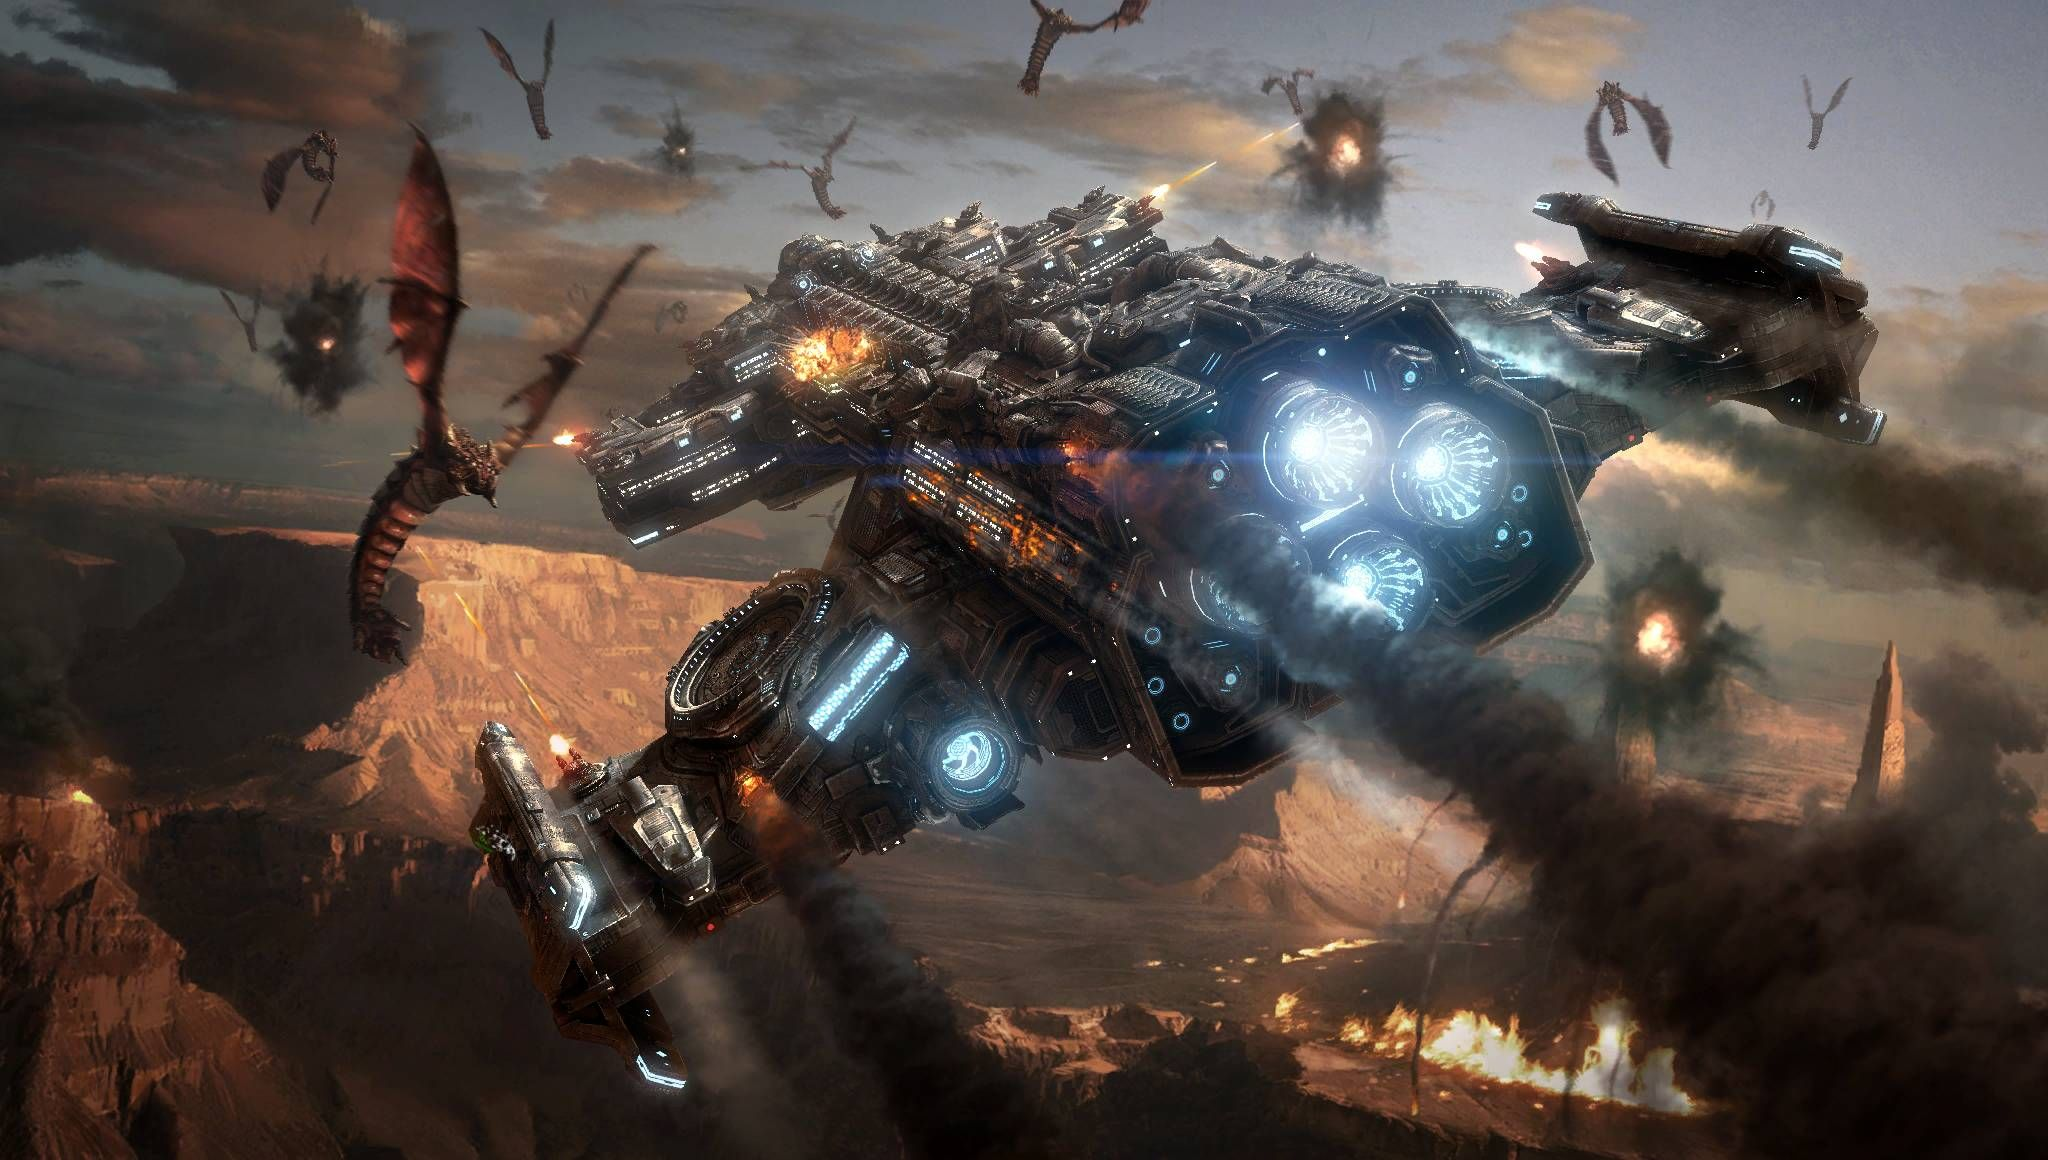 Starcraft 2 Terran HD Desktop Wallpaper : Widescreen